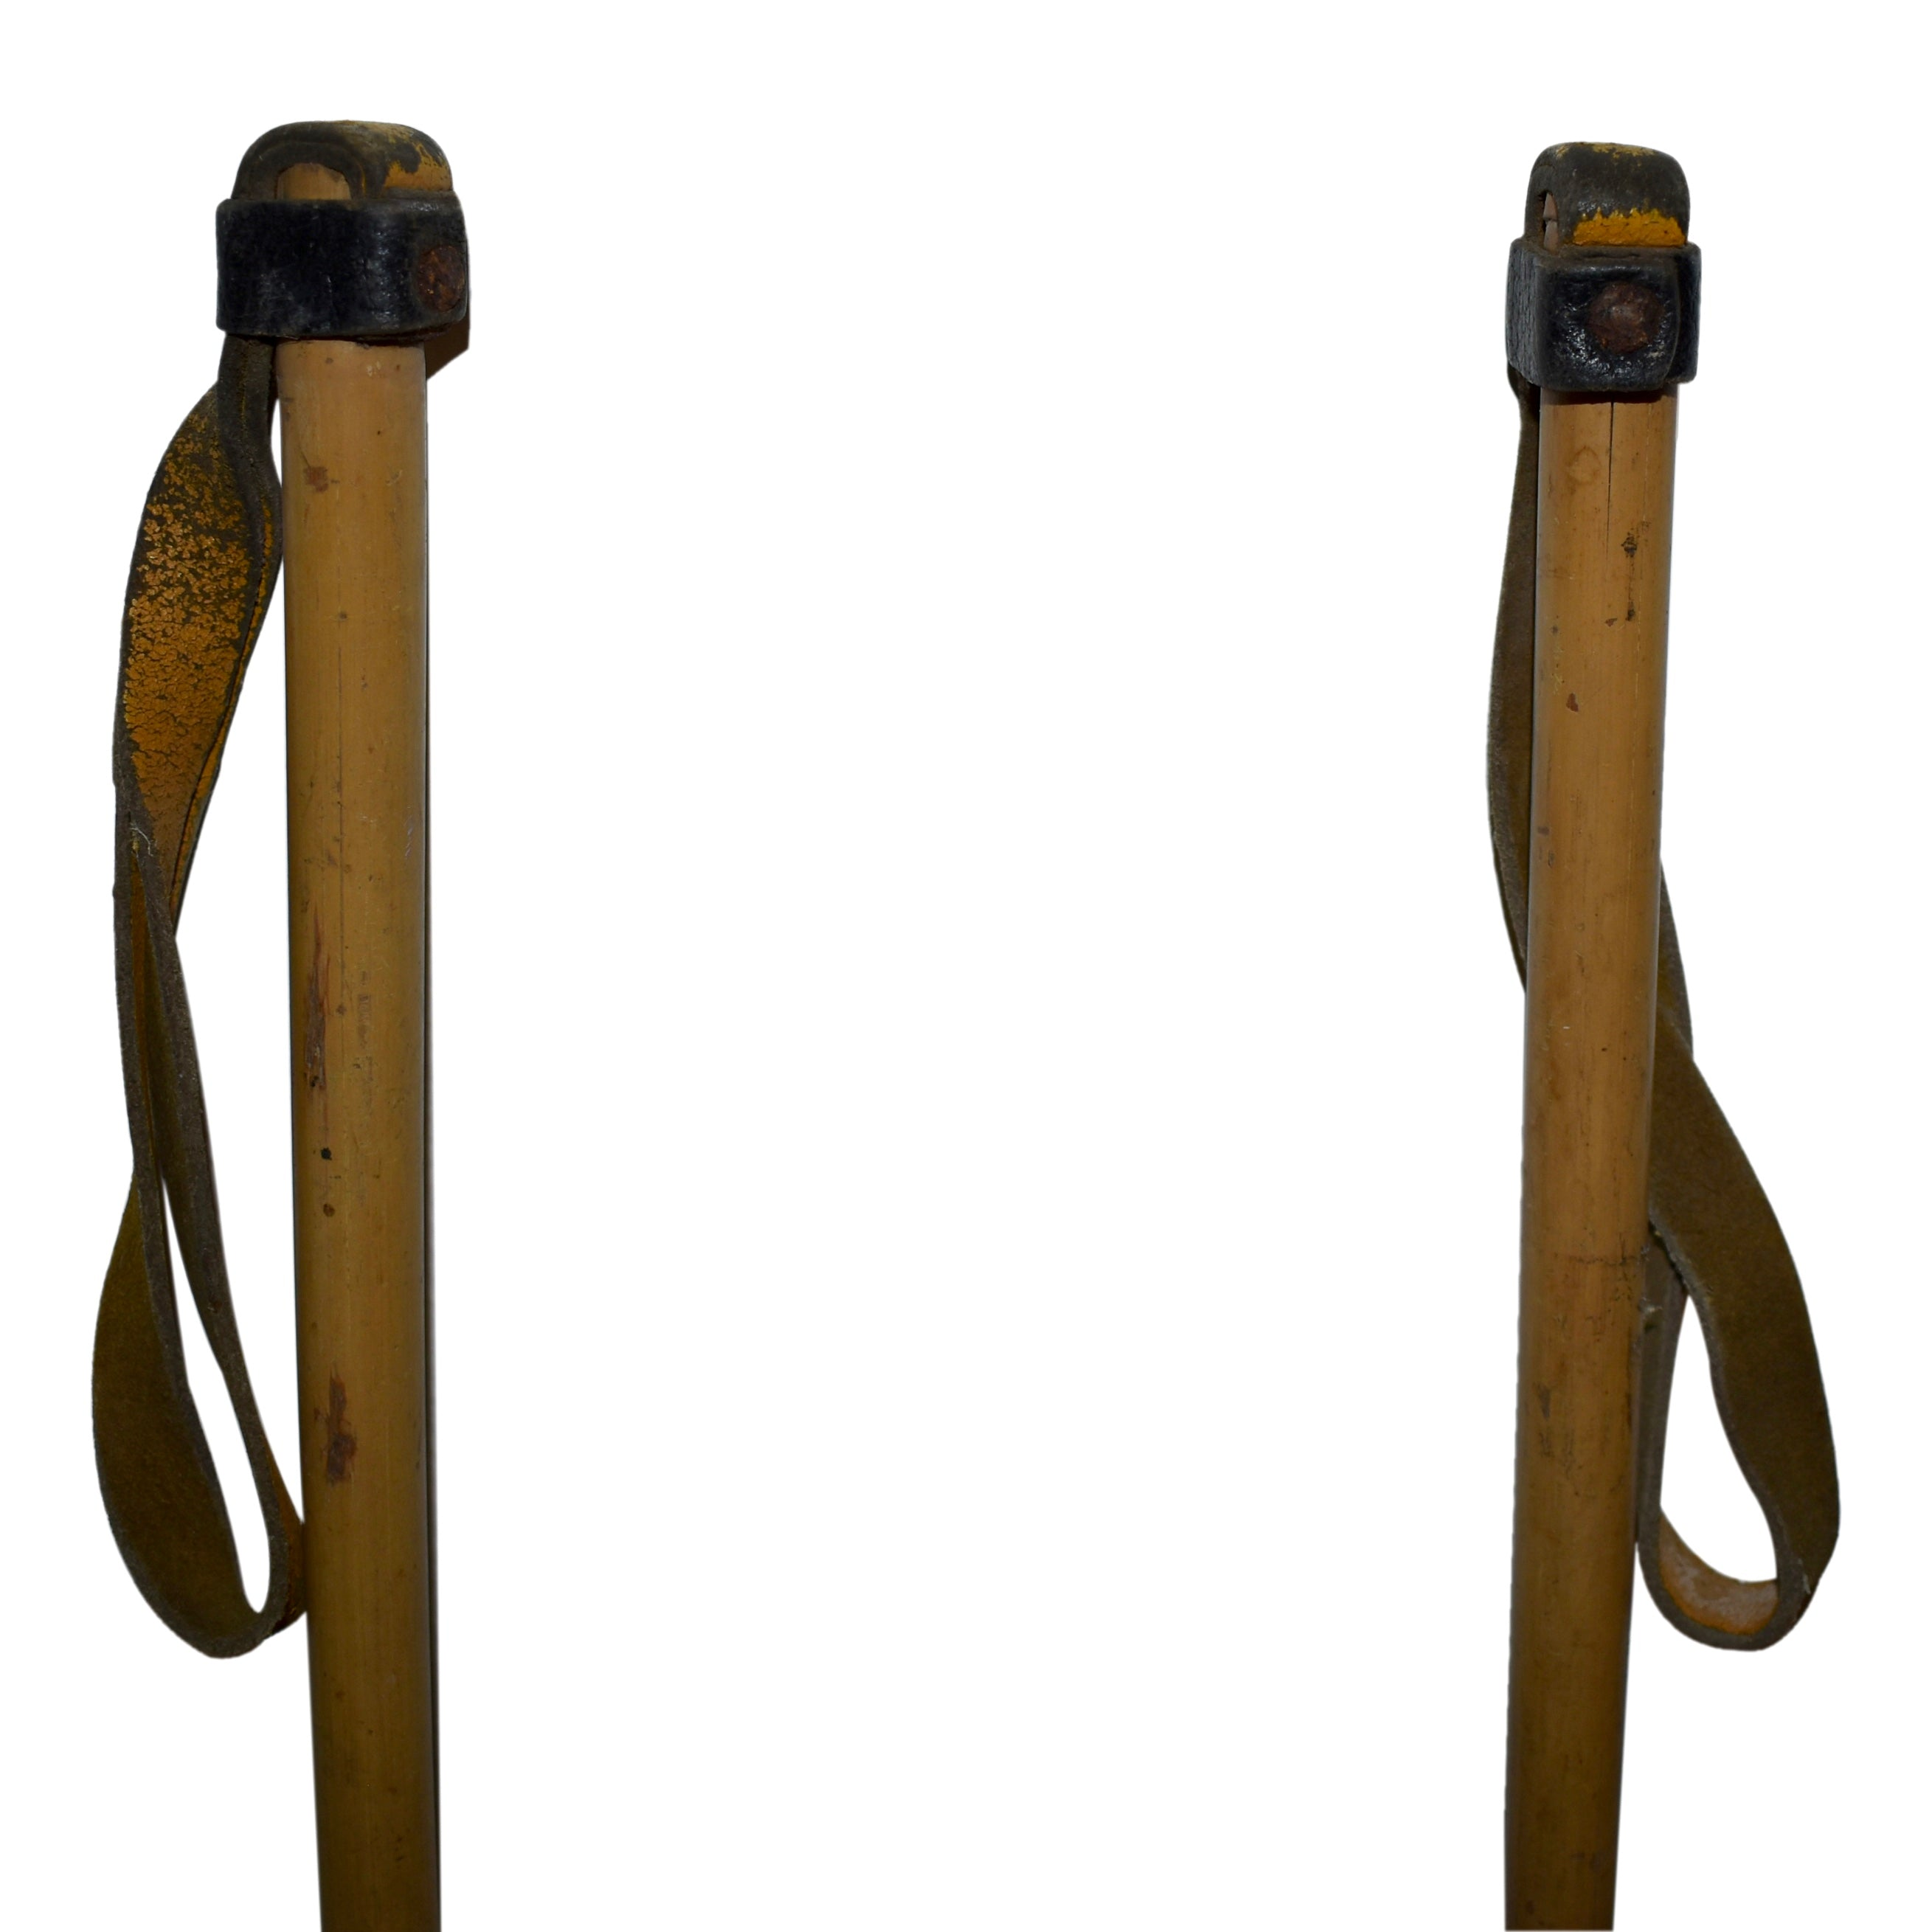 Bamboo Ski Poles with Leather Straps